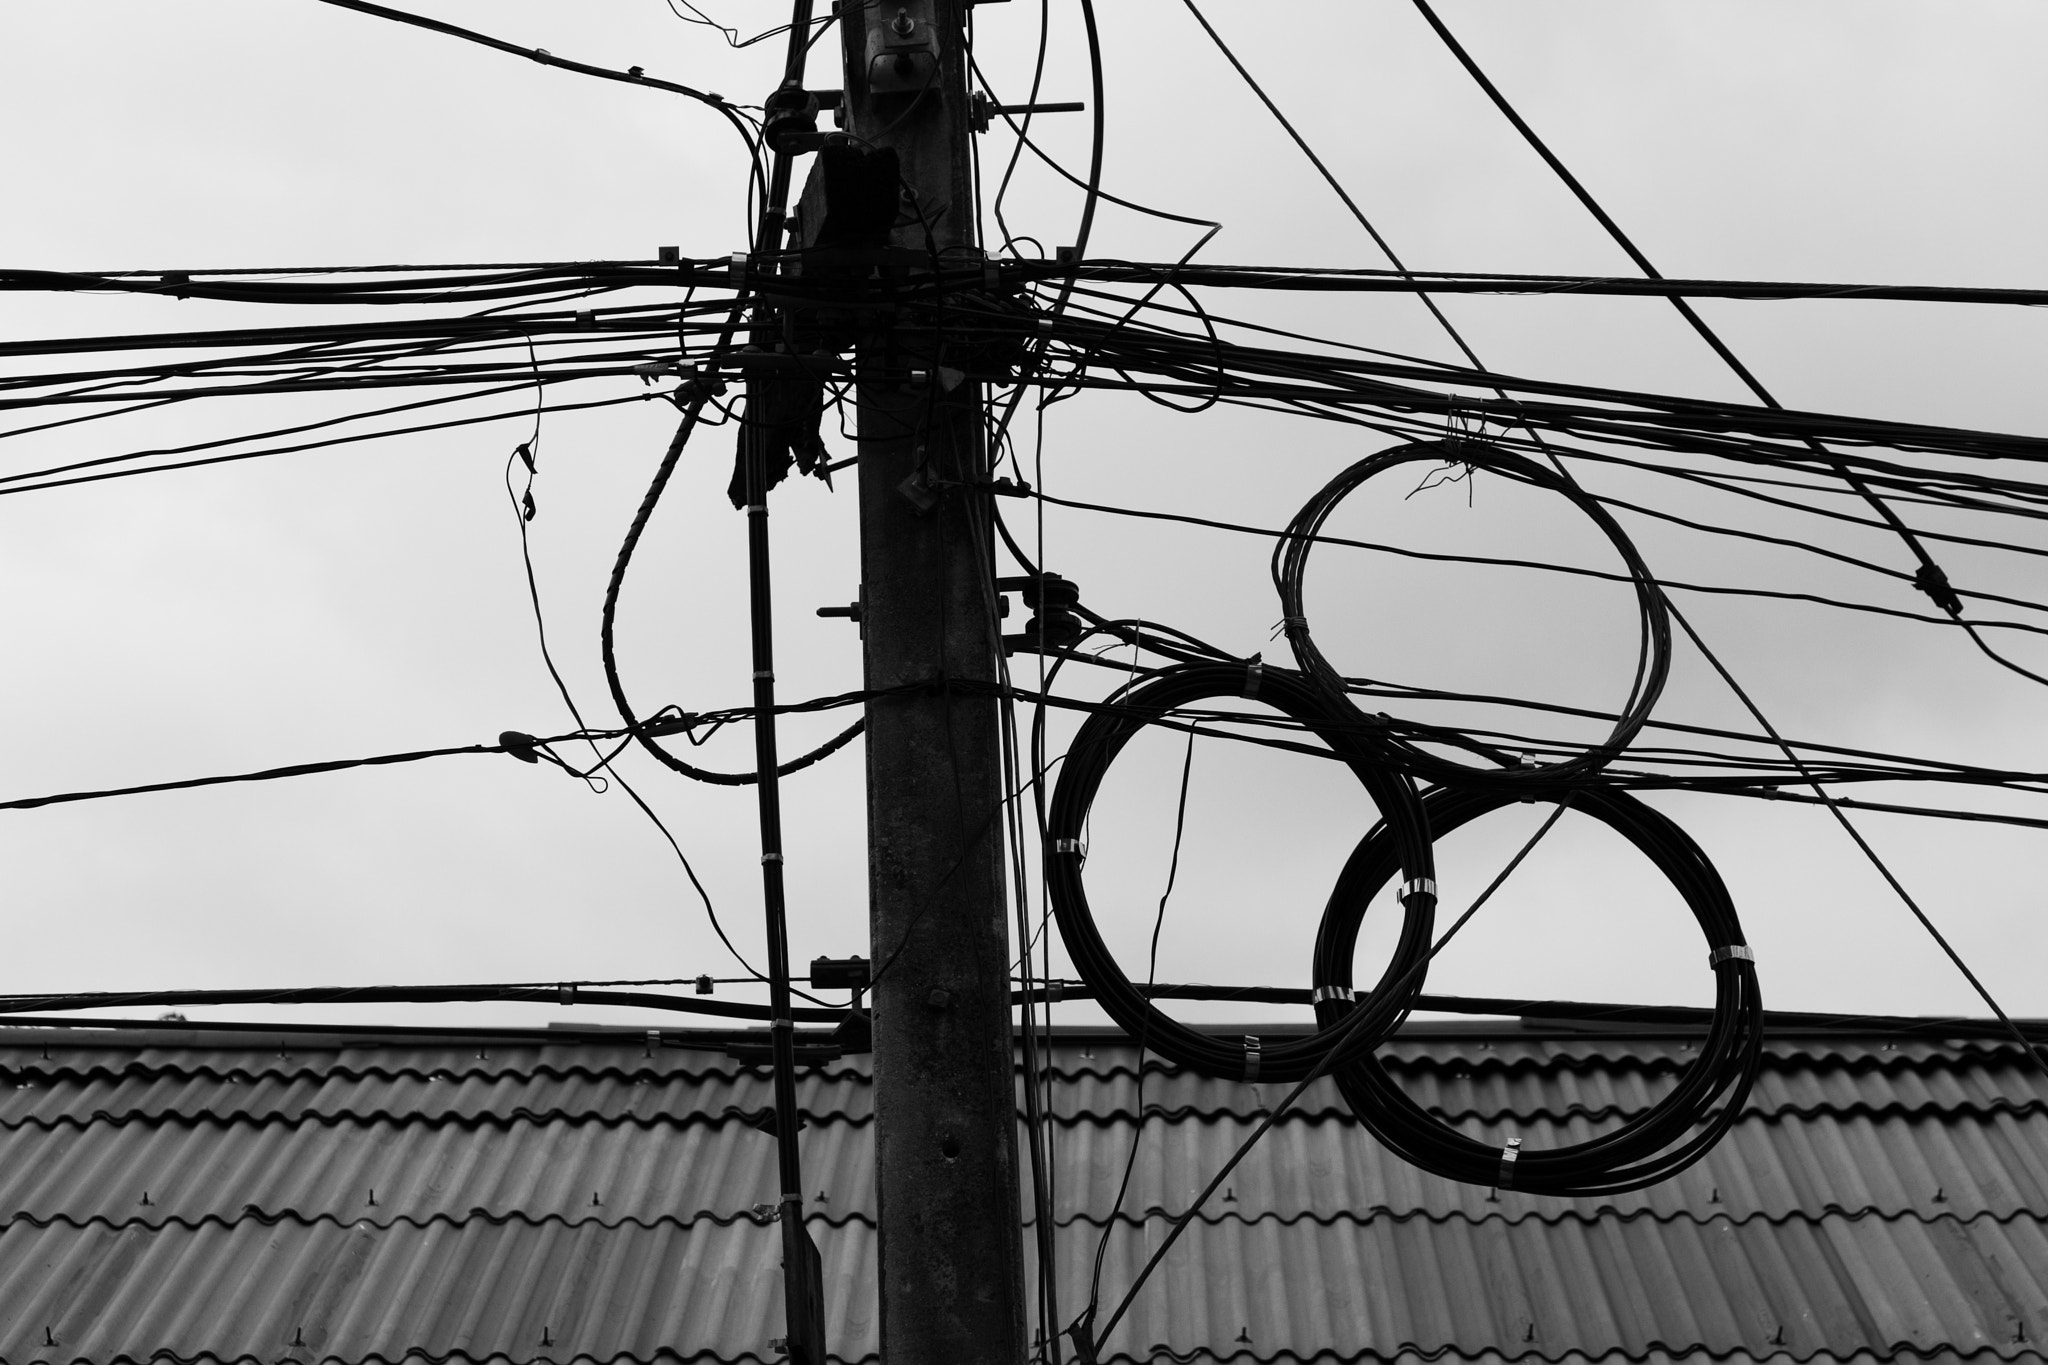 Photograph Wire by Paolo Baccolo on 500px